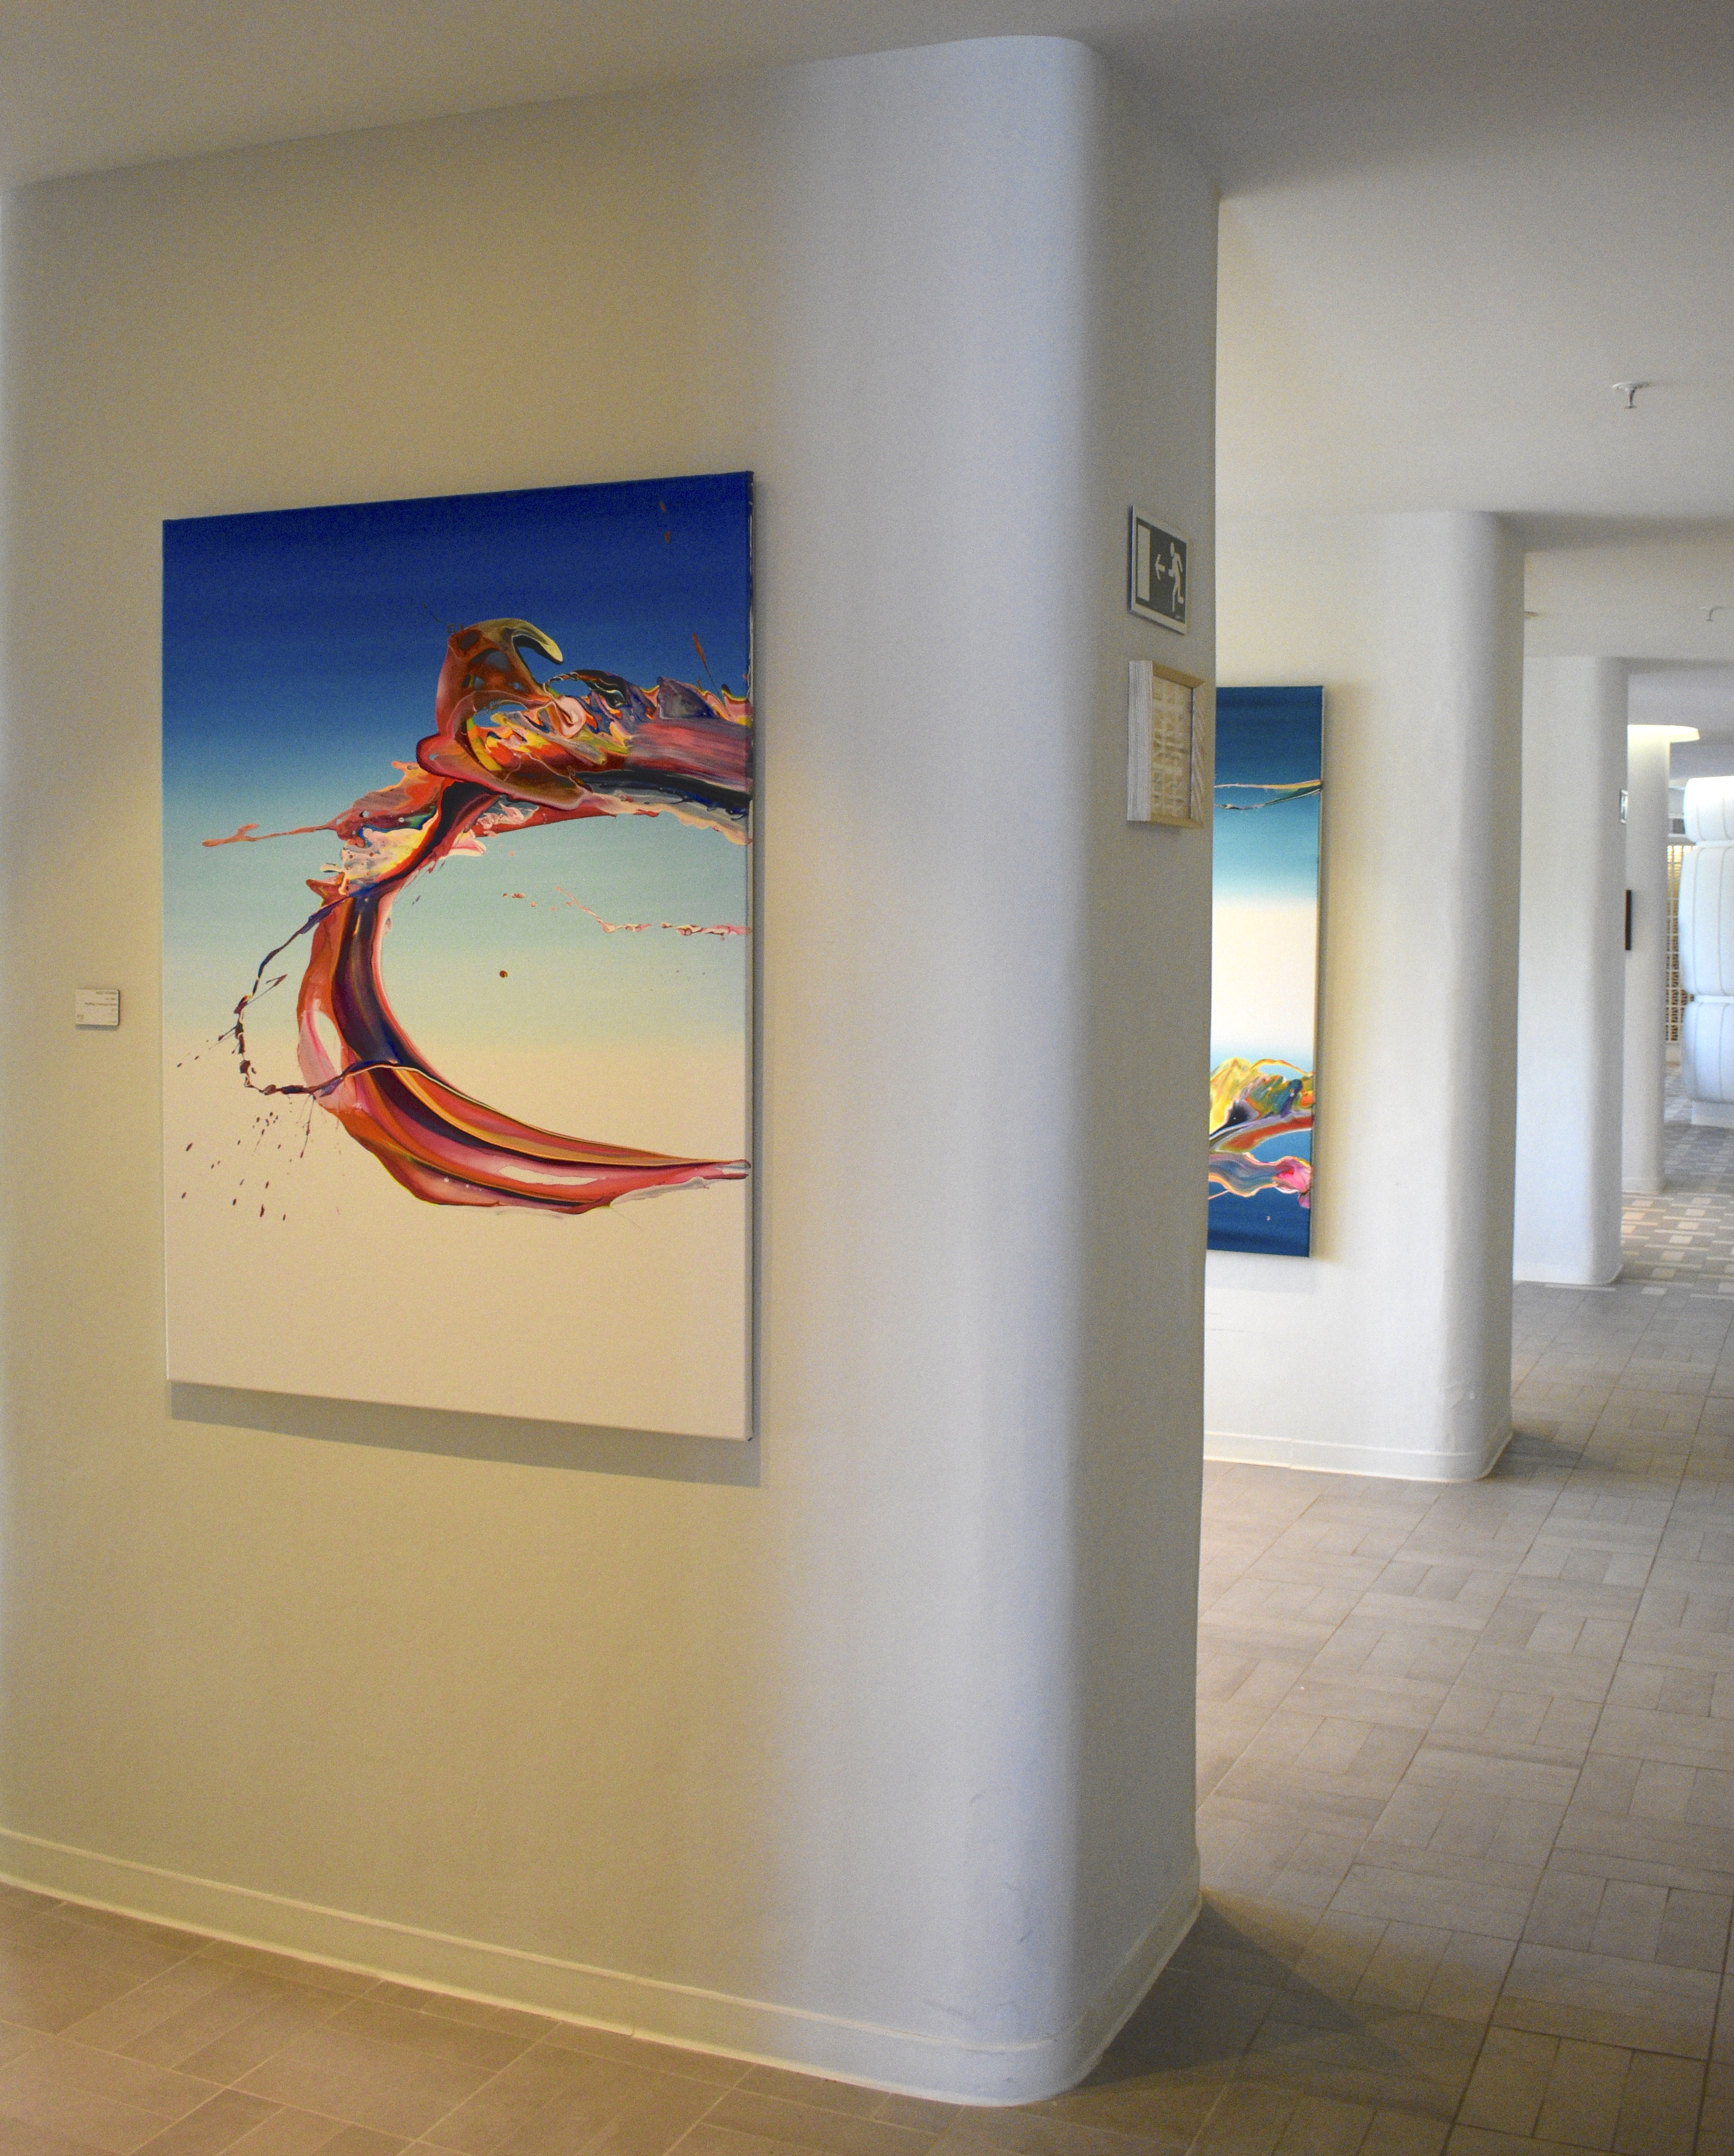 Hotel Me Exhibition, July 2019